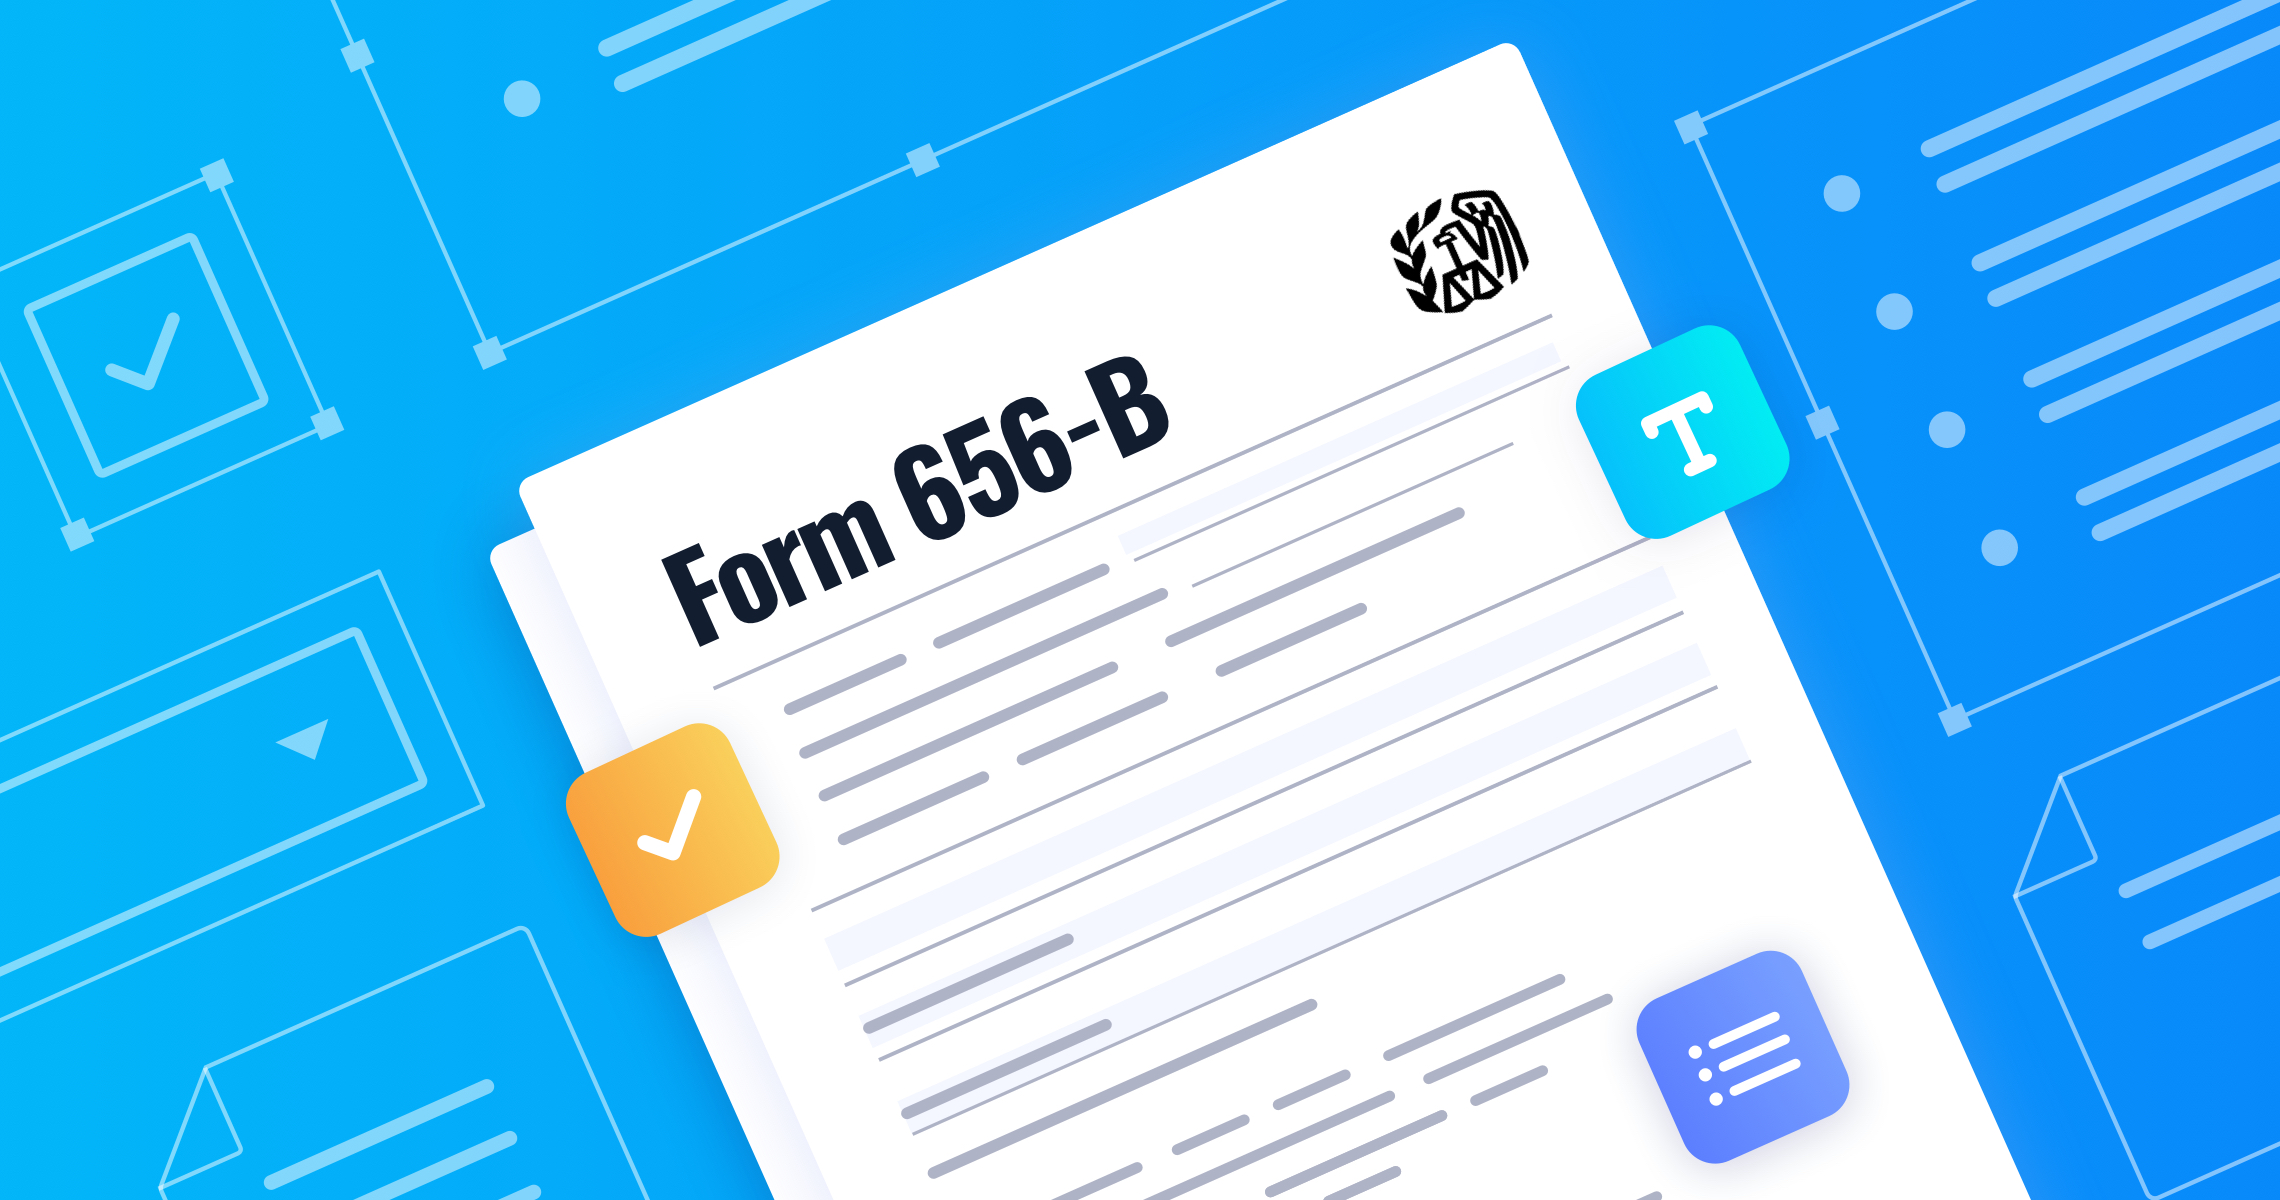 Offer In Compromise Form 656 B